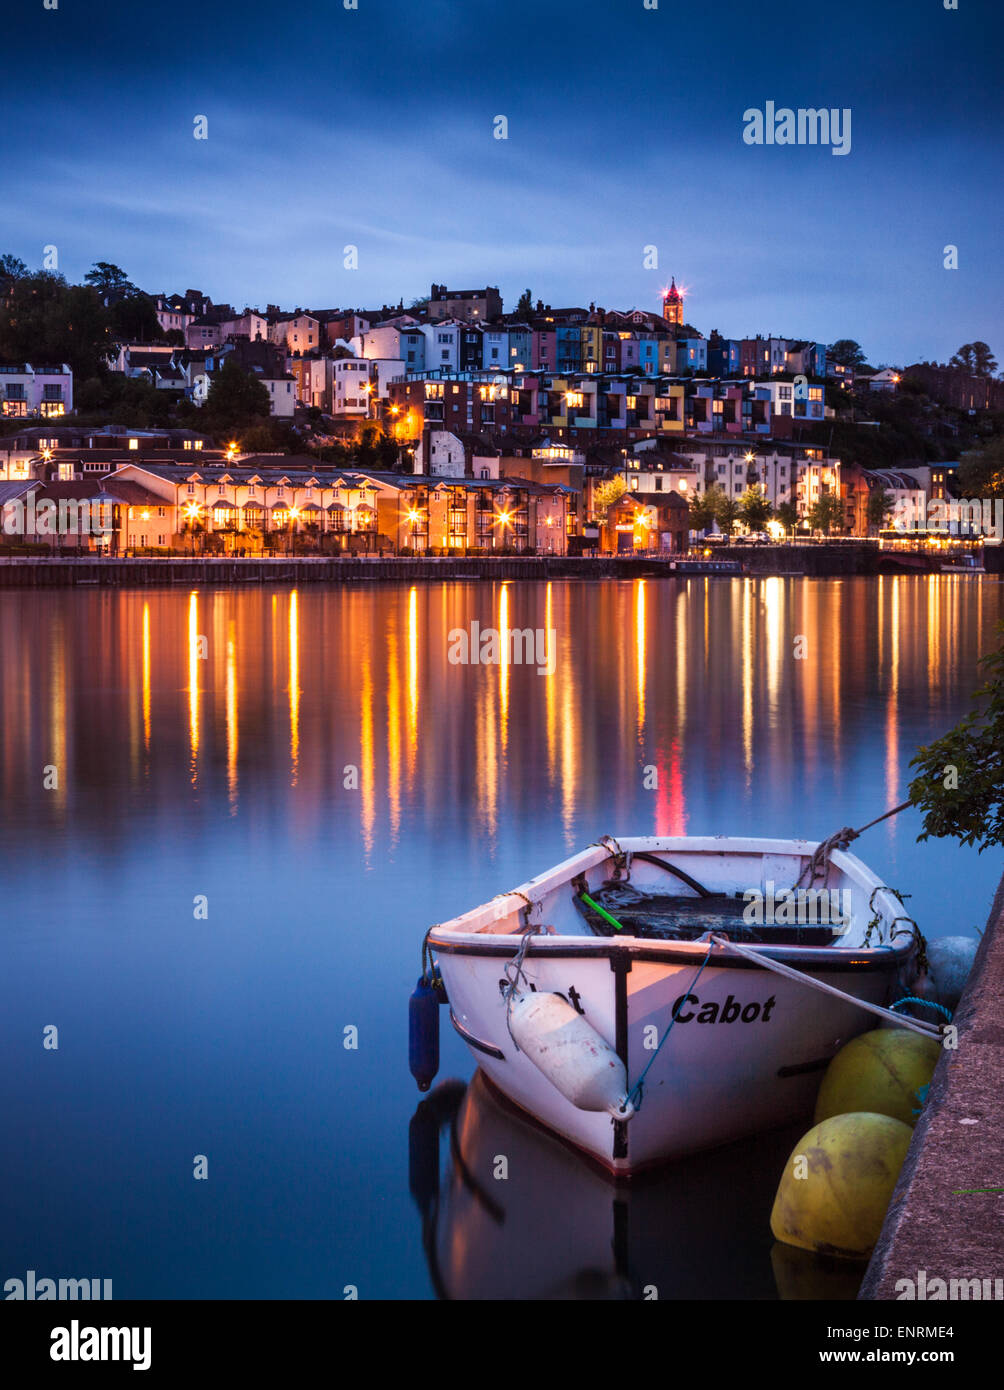 A view of Hotwells in Bristol at dusk. Cabot Tower can be seen flashing it's red lights on top of Brandon Hill - Stock Image